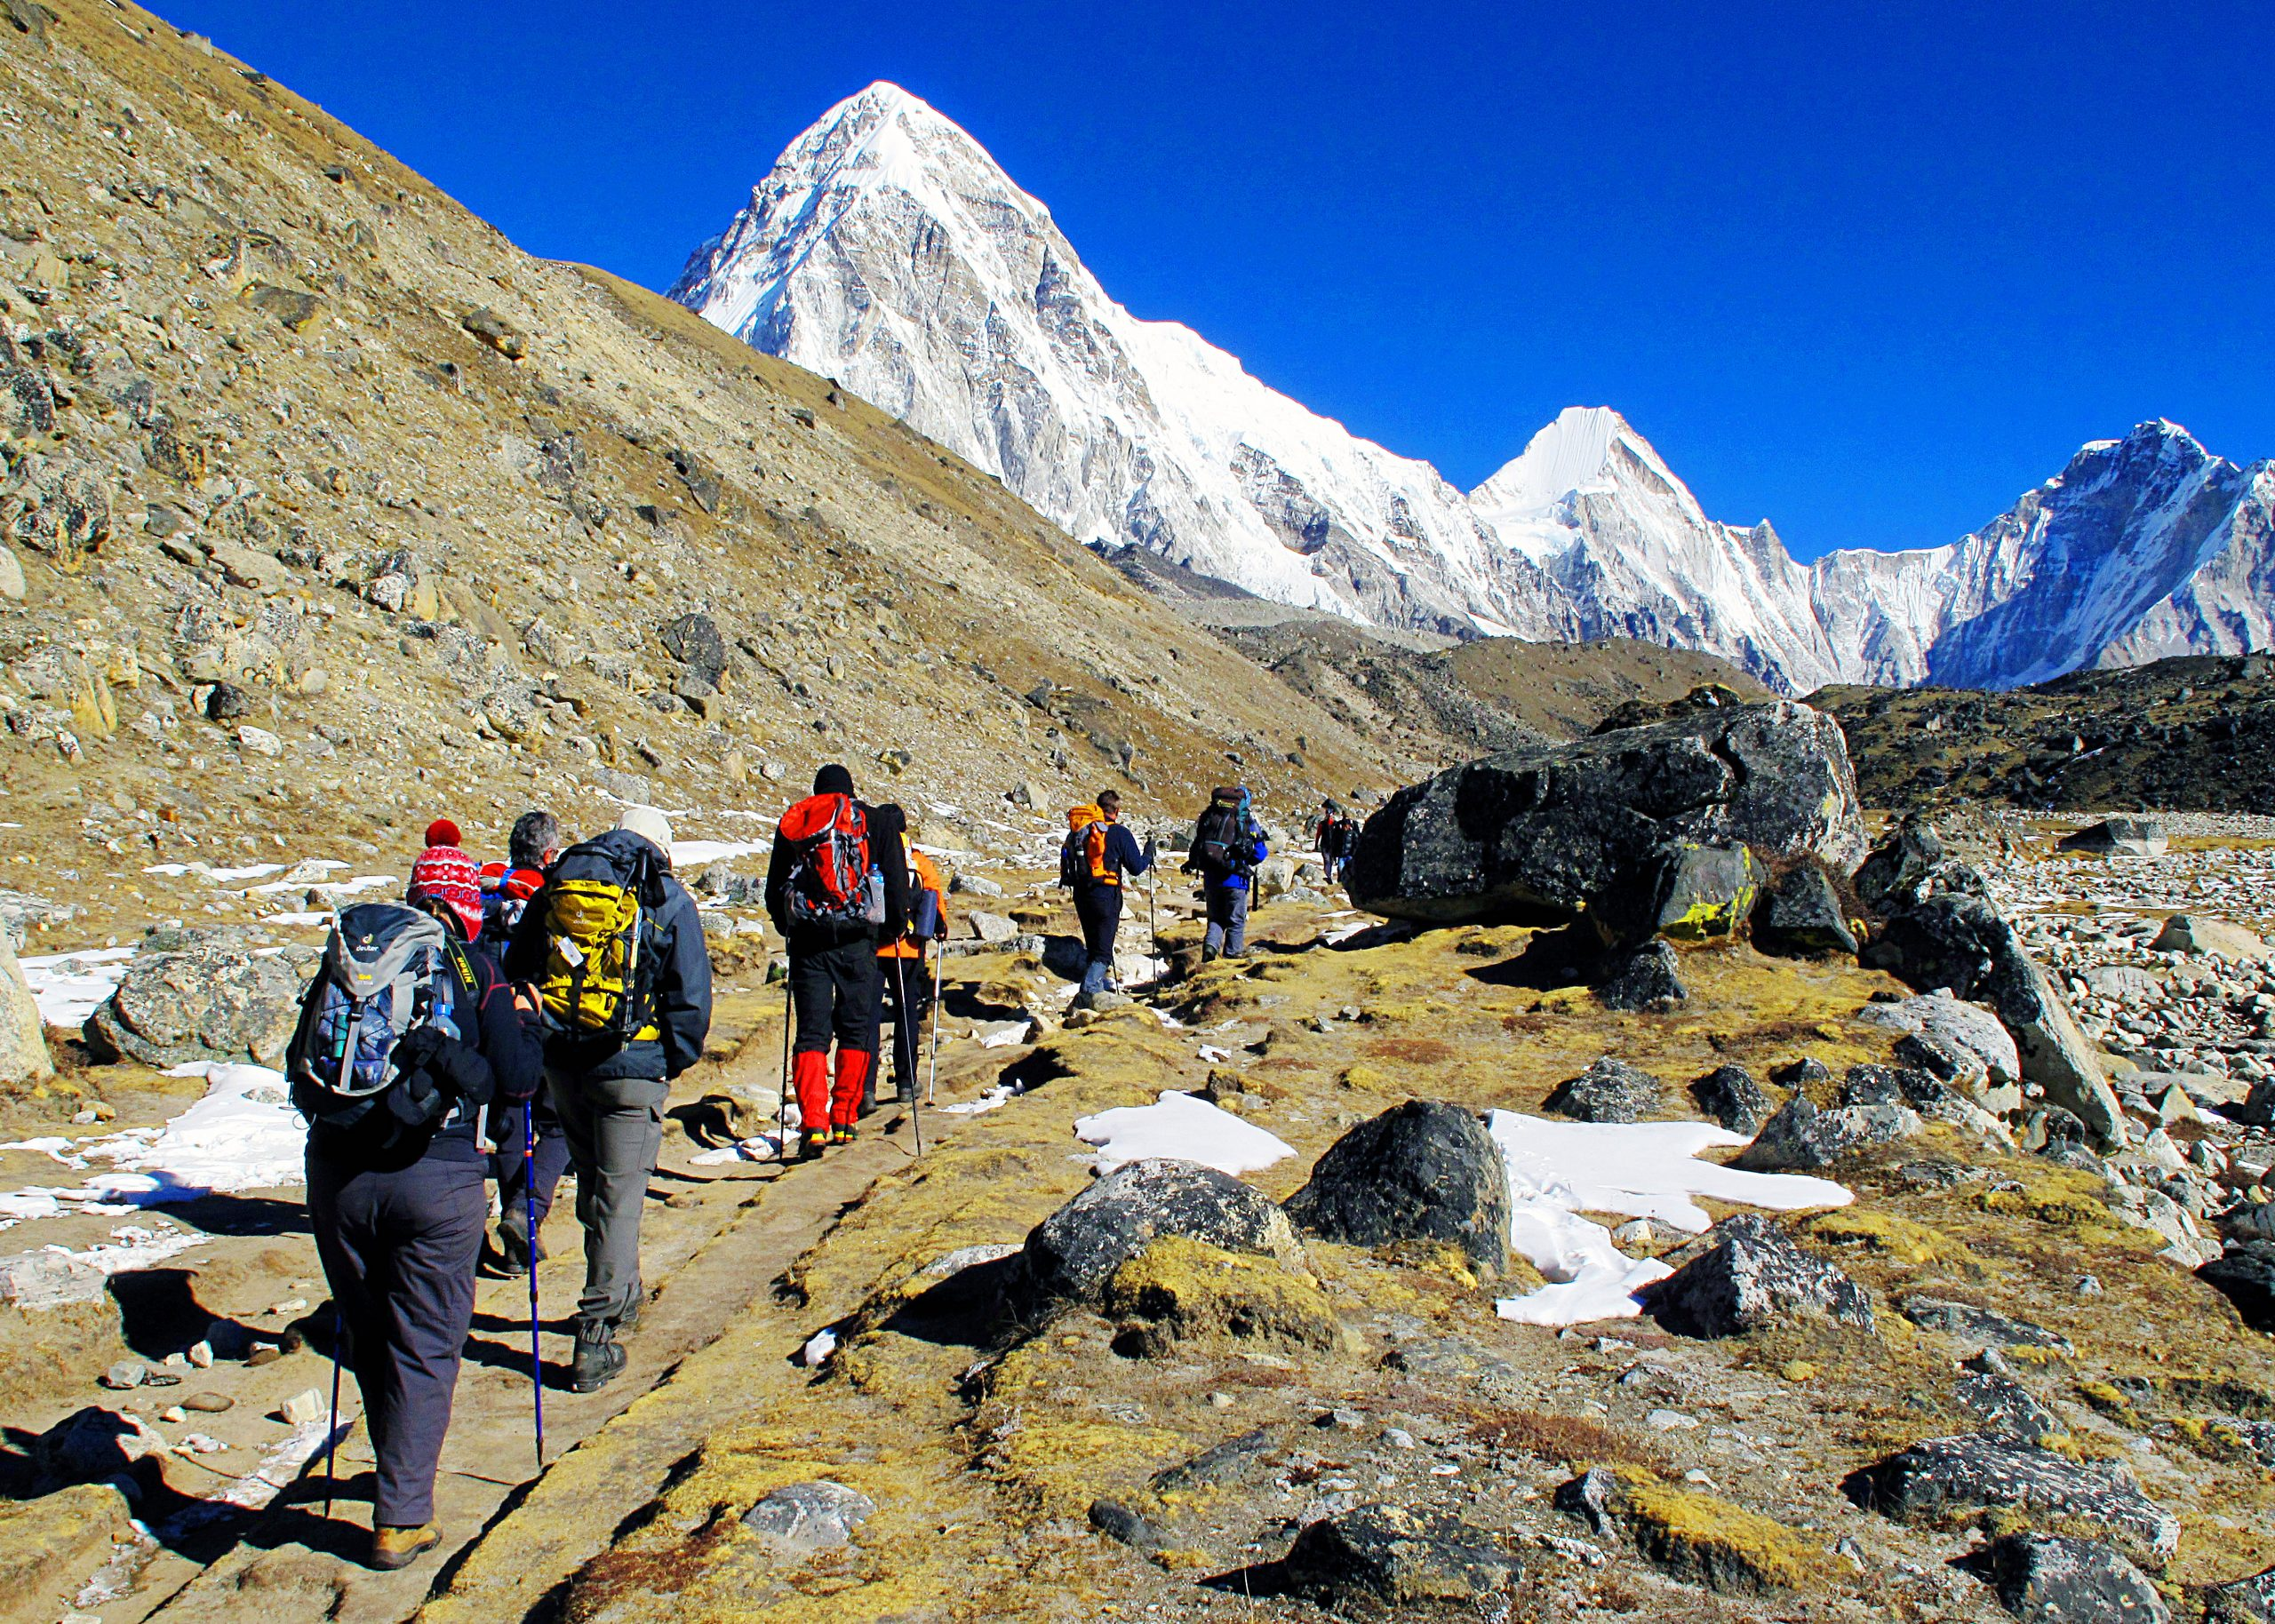 Visit Nepal 2020 Trekking in Everest Region